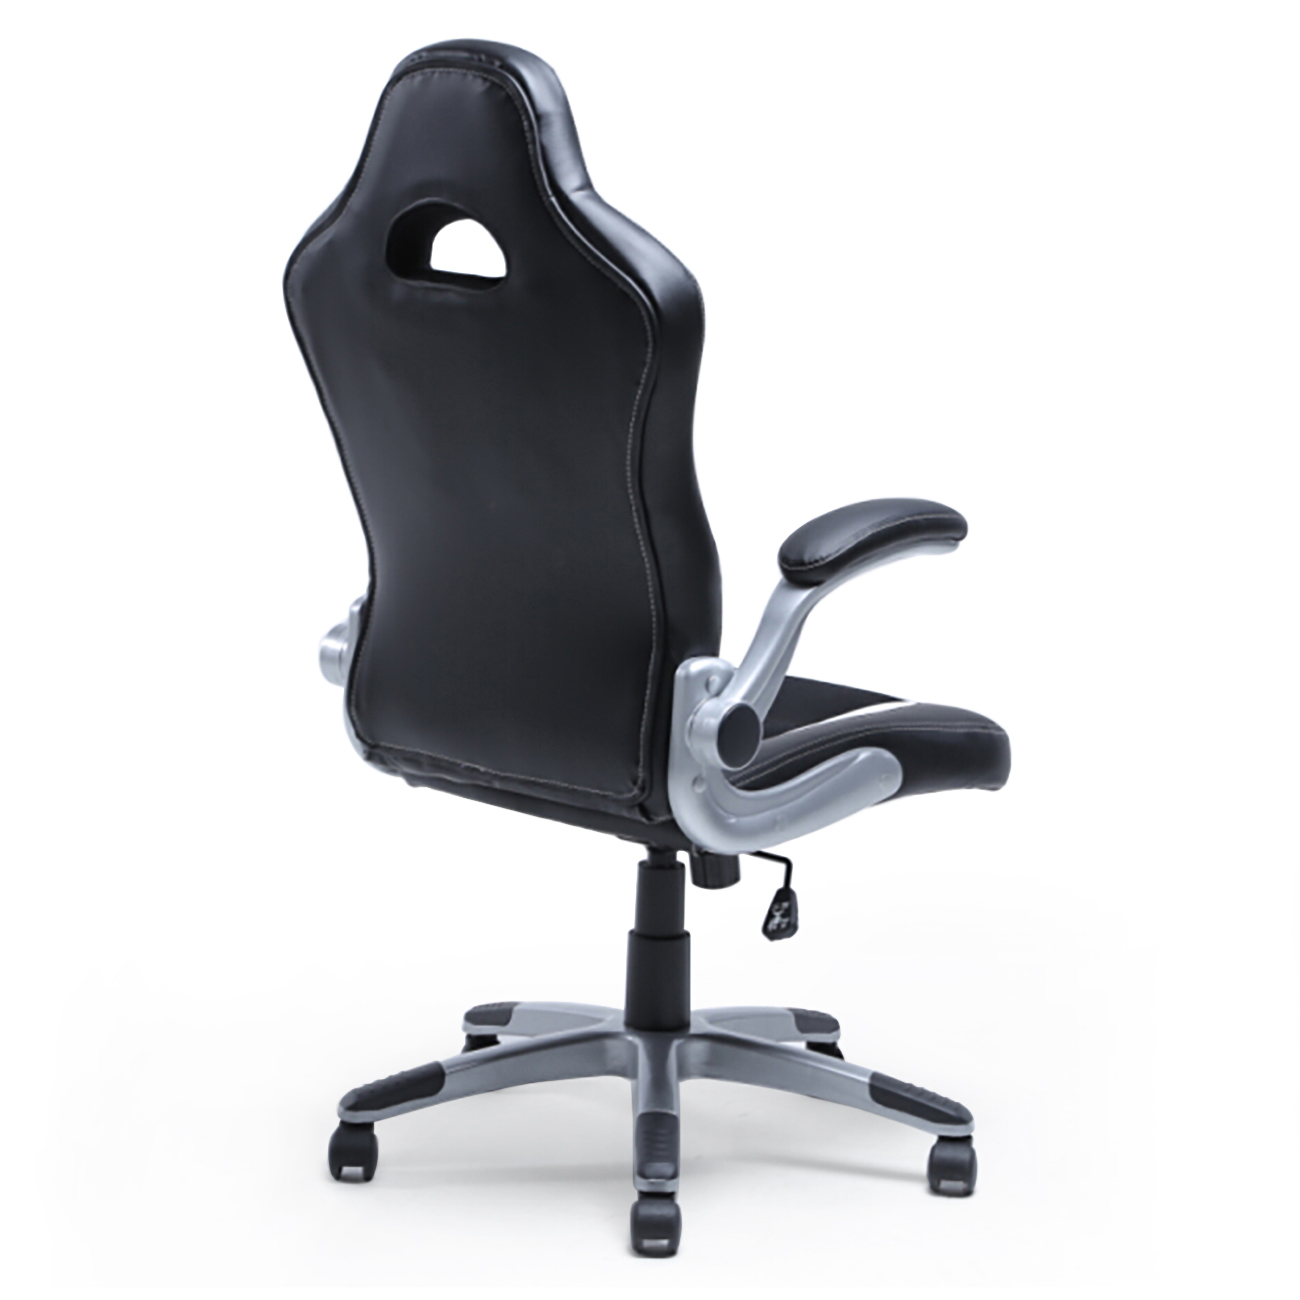 office chair armrest free barber ergonomic computer pu leather desk race car